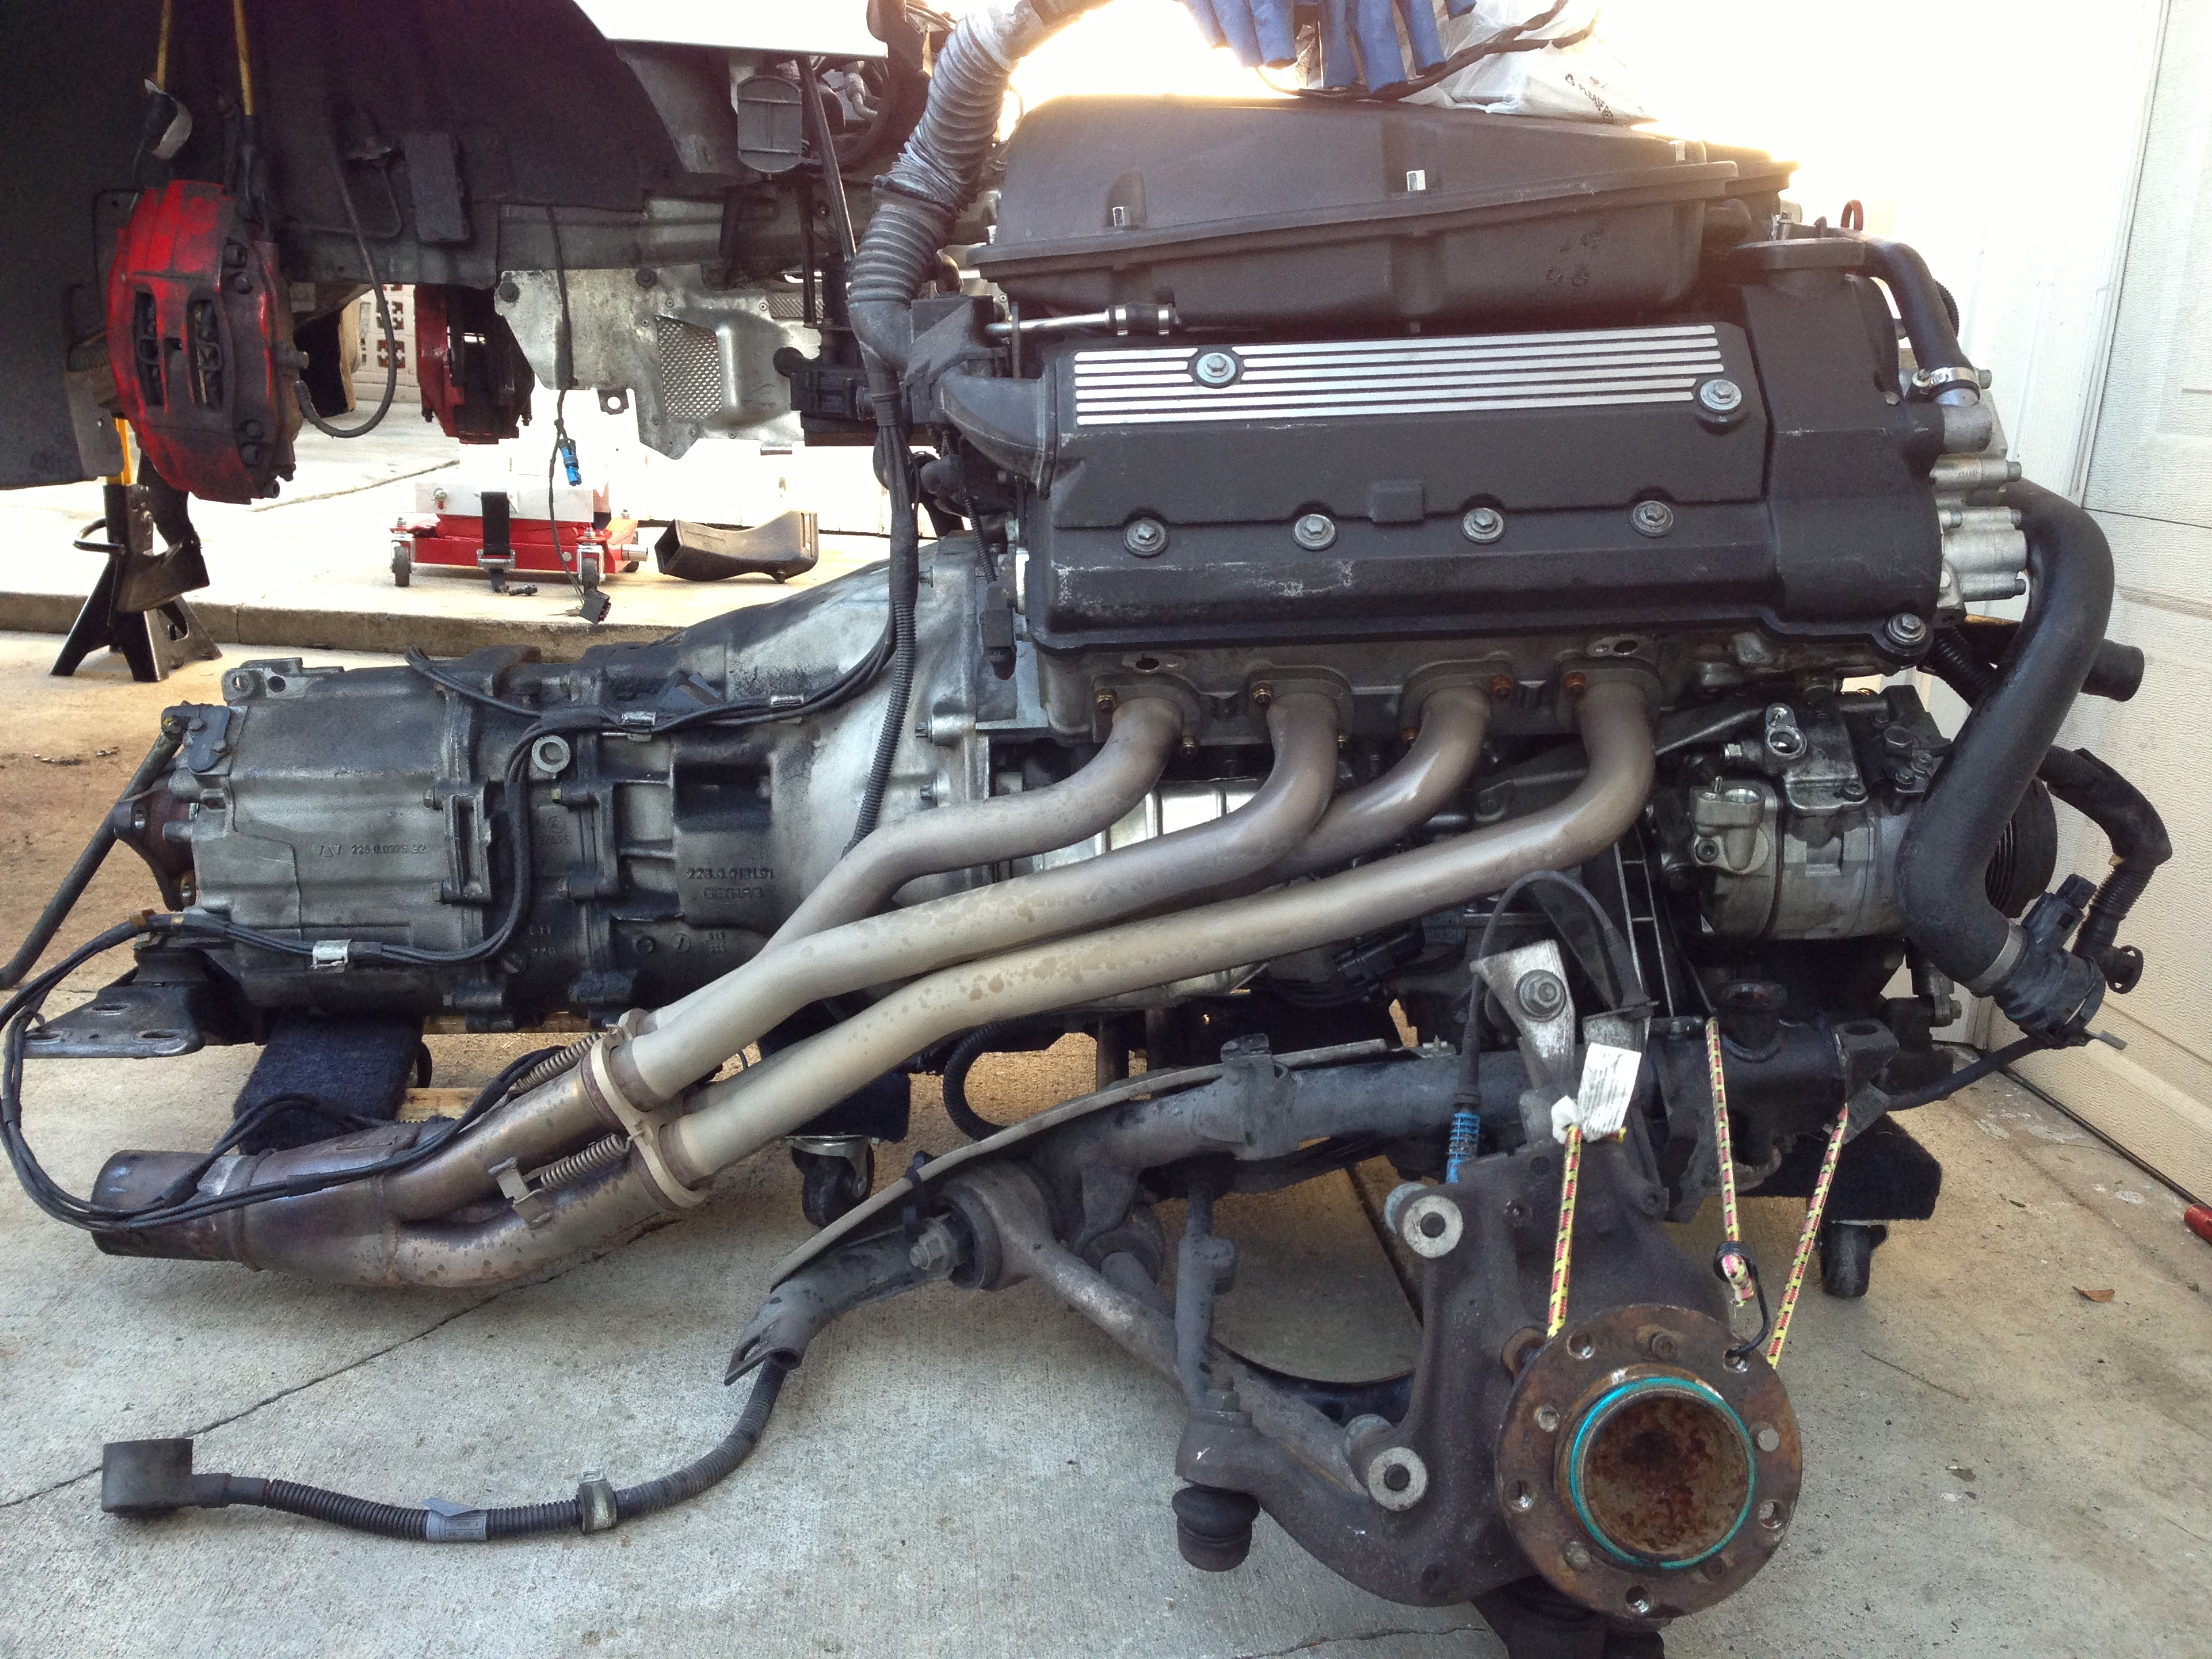 Jet Hot Coated Supersprint headers w/ connecting & cat delete pipes-img_1256.jpg